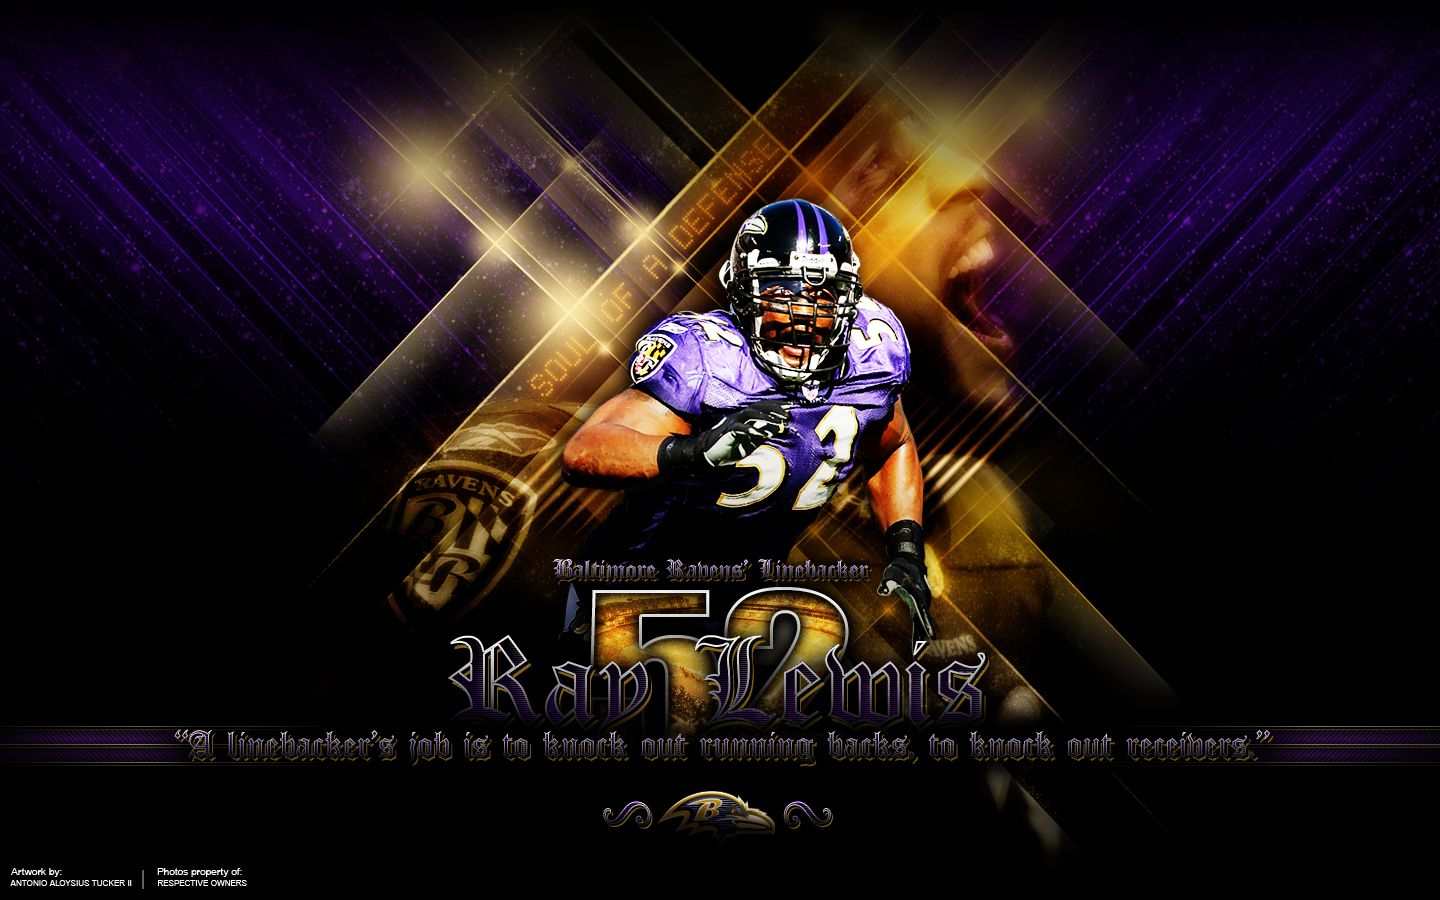 Collection Of Baltimore Ravens Wallpaper On HDWallpapers Wallpapers